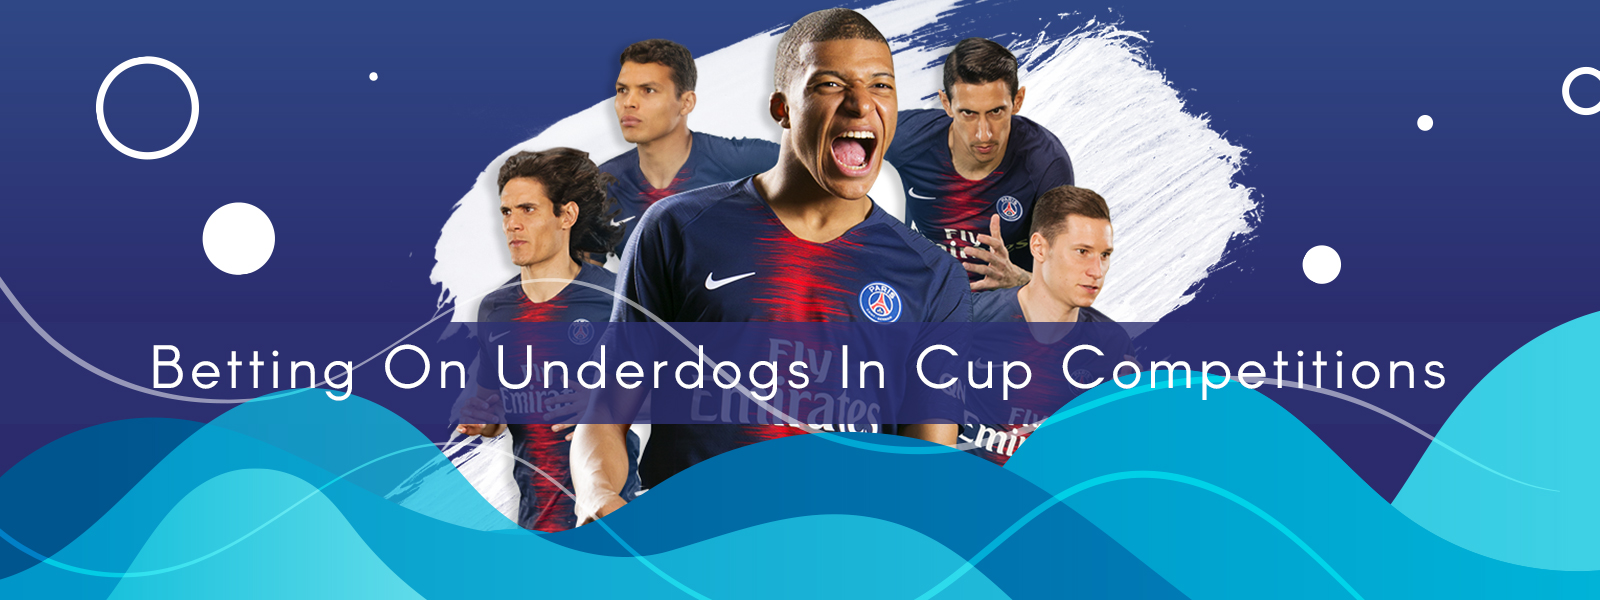 SoccerTipsters Blog | Betting On Underdogs In Cup Competitions